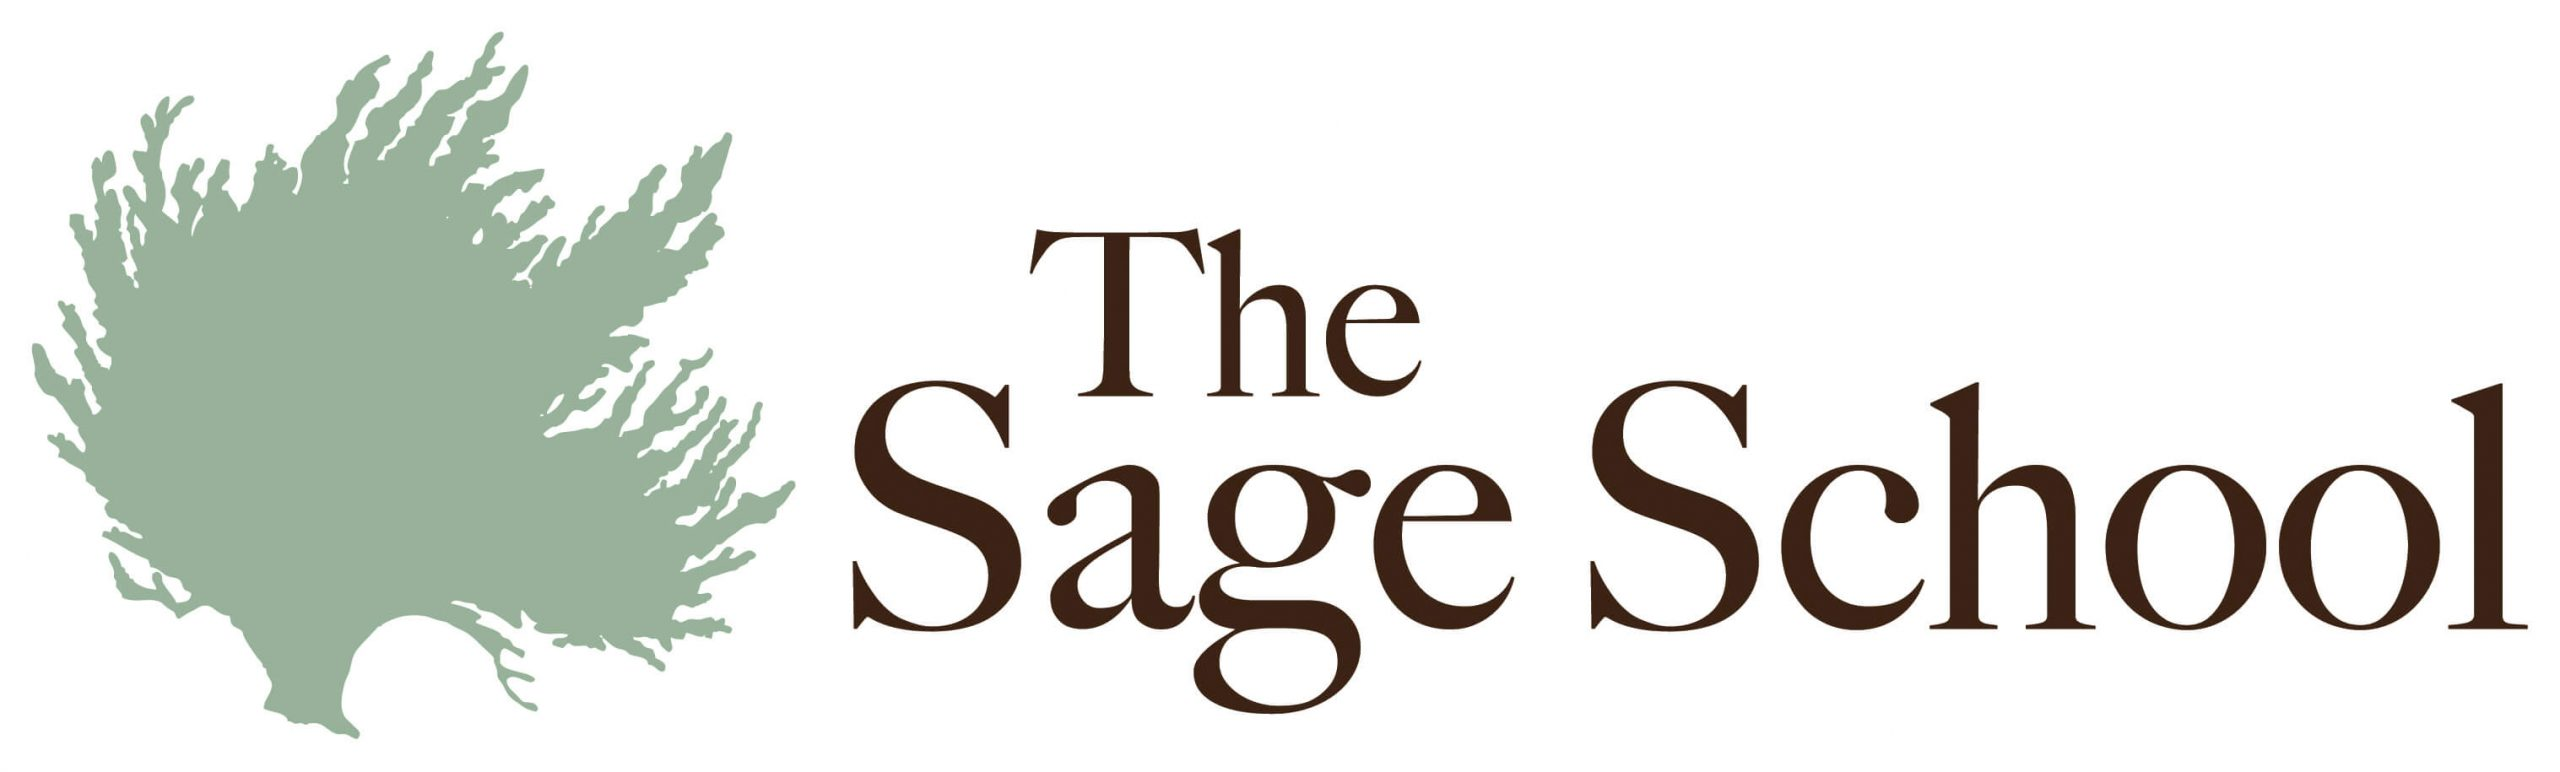 the sage school idaho logo